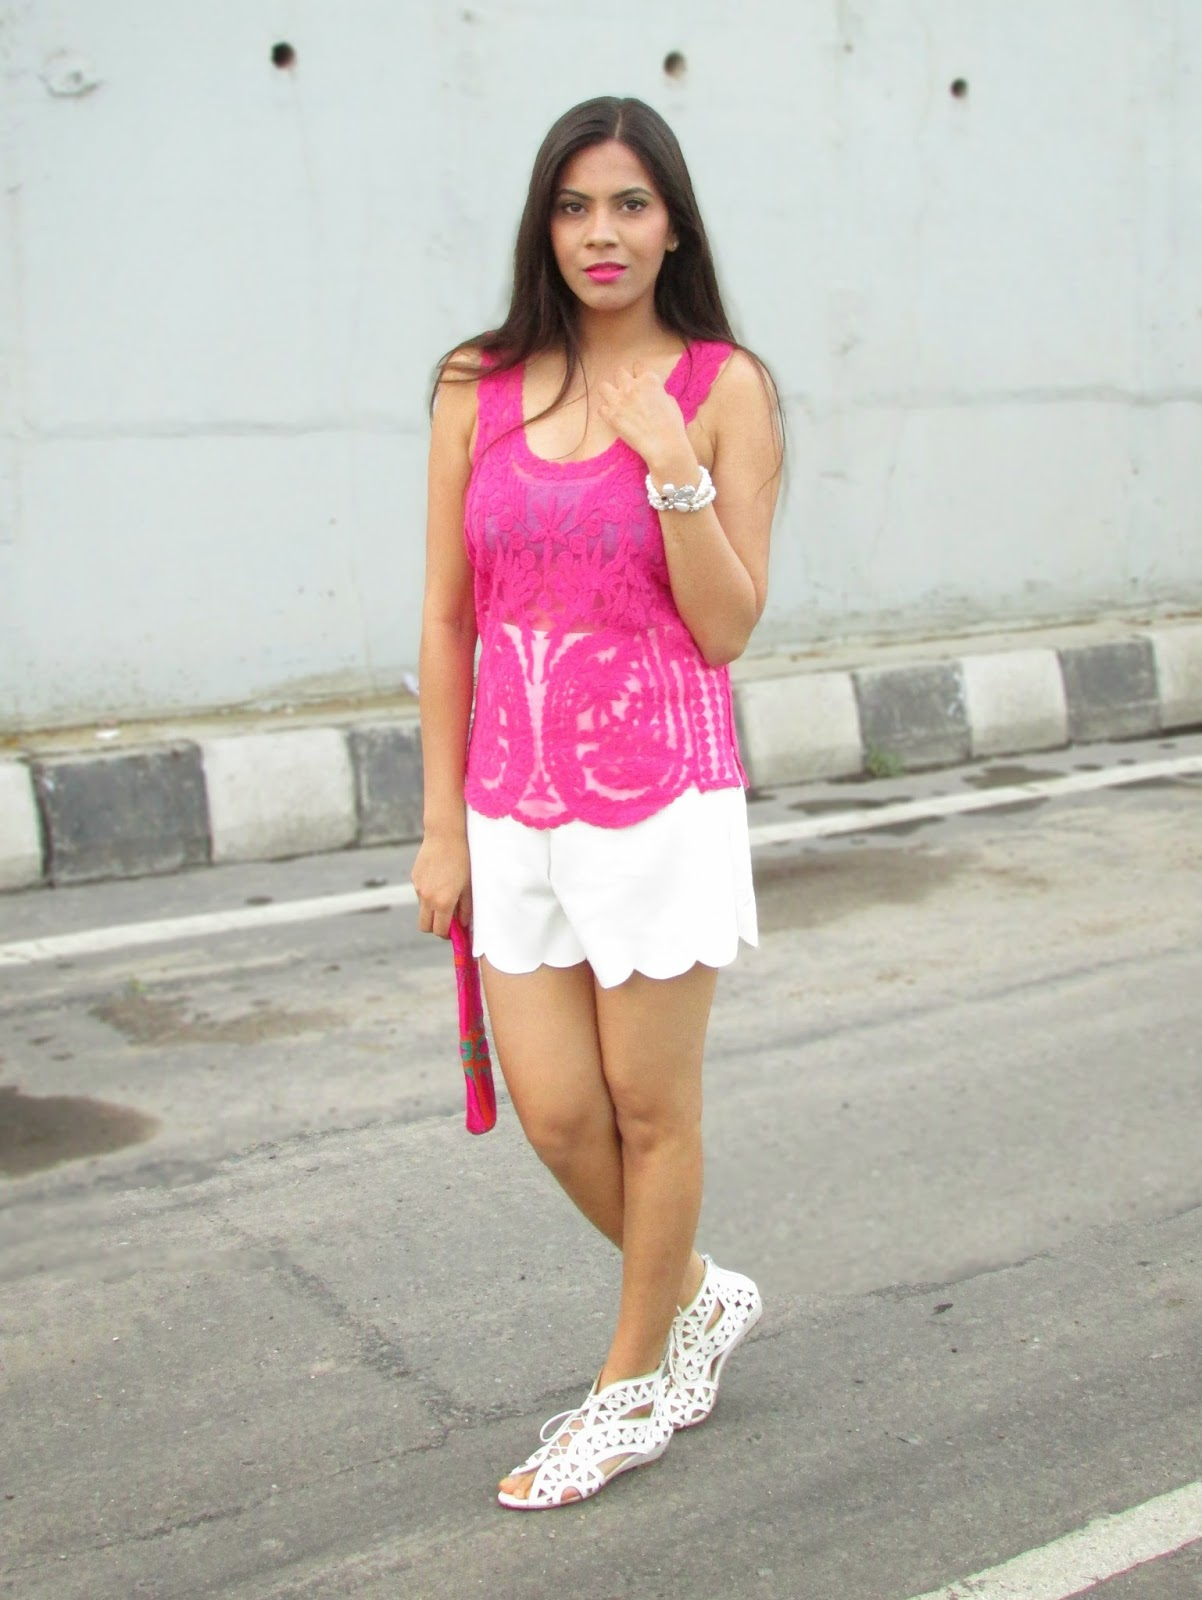 lce , lace shoes , lace up shoes , white , white shoes,Statement necklace, necklace, statement necklaces, big necklace, heavy necklaces , gold necklace, silver necklace, silver statement necklace, gold statement necklace, studded statement necklace , studded necklace, stone studded necklace, stone necklace, stove studded statement necklace, stone statement necklace, stone studded gold statement necklace, stone studded silver statement necklace, black stone necklace, black stone studded statement necklace, black stone necklace, black stone statement necklace, neon statement necklace, neon stone statement necklace, black and silver necklace, black and gold necklace, blank and silver statement necklace, black and gold statement necklace, silver jewellery, gold jewellery, stove jewellery, stone studded jewellery, imitation jewellery, artificial jewellery, junk jewellery, cheap jewellery , lovelyshoes Statement necklace, lovelyshoes necklace, lovelyshoes statement necklaces,lovelyshoes big necklace, lovelyshoes heavy necklaces , lovelyshoes gold necklace, lovelyshoes silver necklace, lovelyshoes silver statement necklace,lovelyshoes gold statement necklace, lovelyshoes studded statement necklace , lovelyshoes studded necklace, lovelyshoes stone studded necklace, lovelyshoes stone necklace, lovelyshoes stove studded statement necklace, lovelyshoes stone statement necklace, lovelyshoes stone studded gold statement necklace, lovelyshoes stone studded silver statement necklace, lovelyshoes black stone necklace, lovelyshoes black stone studded statement necklace, lovelyshoes black stone necklace, lovelyshoes black stone statement necklace, lovelyshoes neon statement necklace, lovelyshoes neon stone statement necklace, lovelyshoes black and silver necklace, lovelyshoes black and gold necklace, lovelyshoes black  and silver statement necklace, lovelyshoes black and gold statement necklace, silver jewellery, lovelyshoes gold jewellery, lovelyshoes stove jewellery, lovelyshoes st